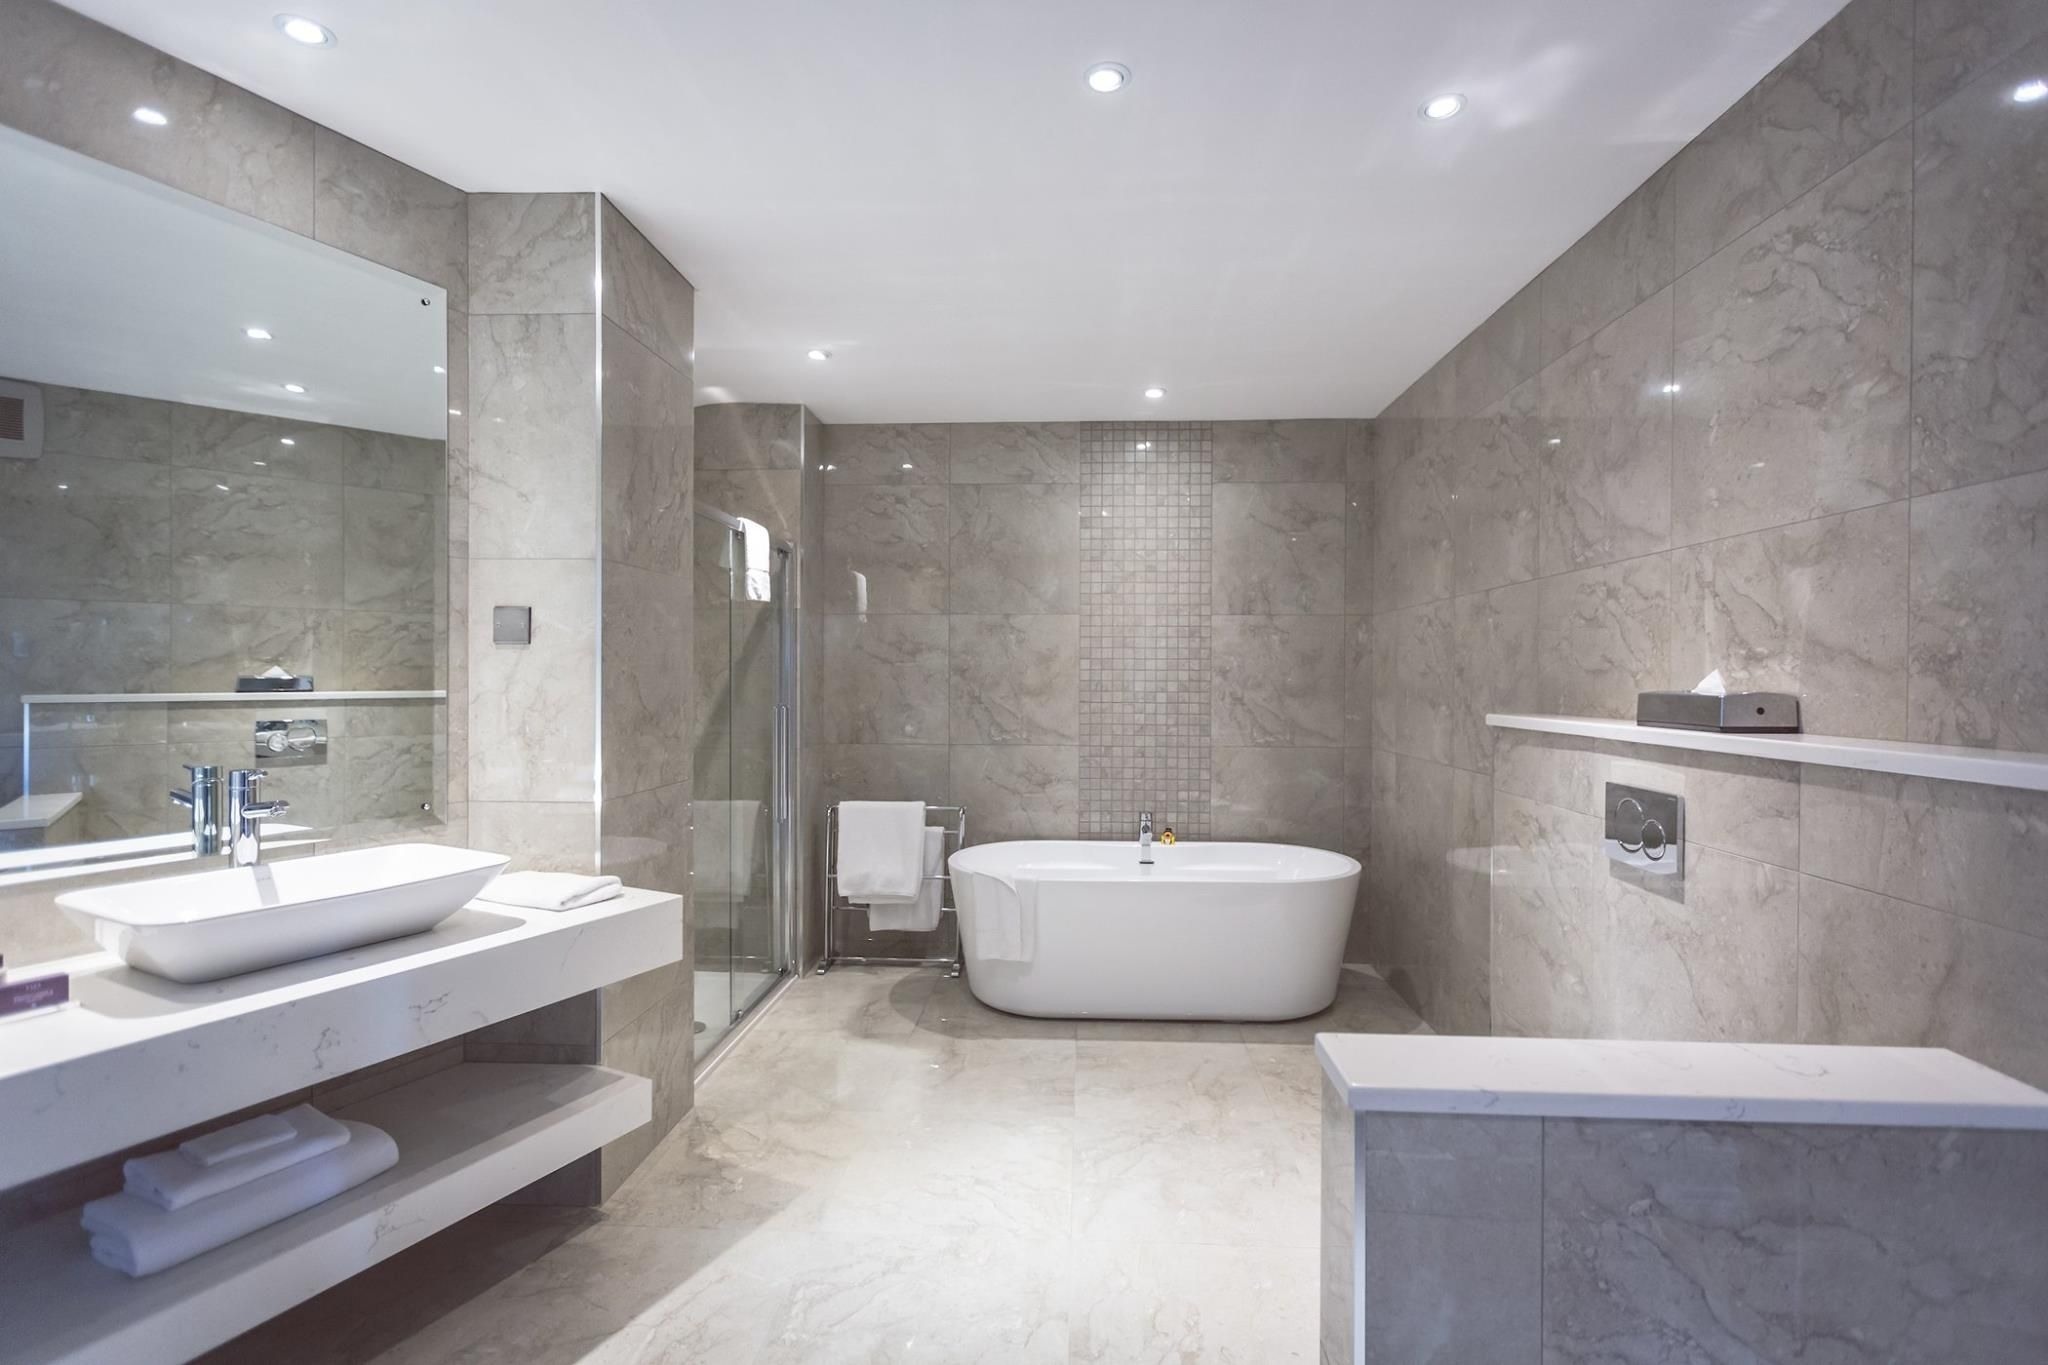 Commercial Bathroos  Bathroom Design Installation And Renovation For Your Business